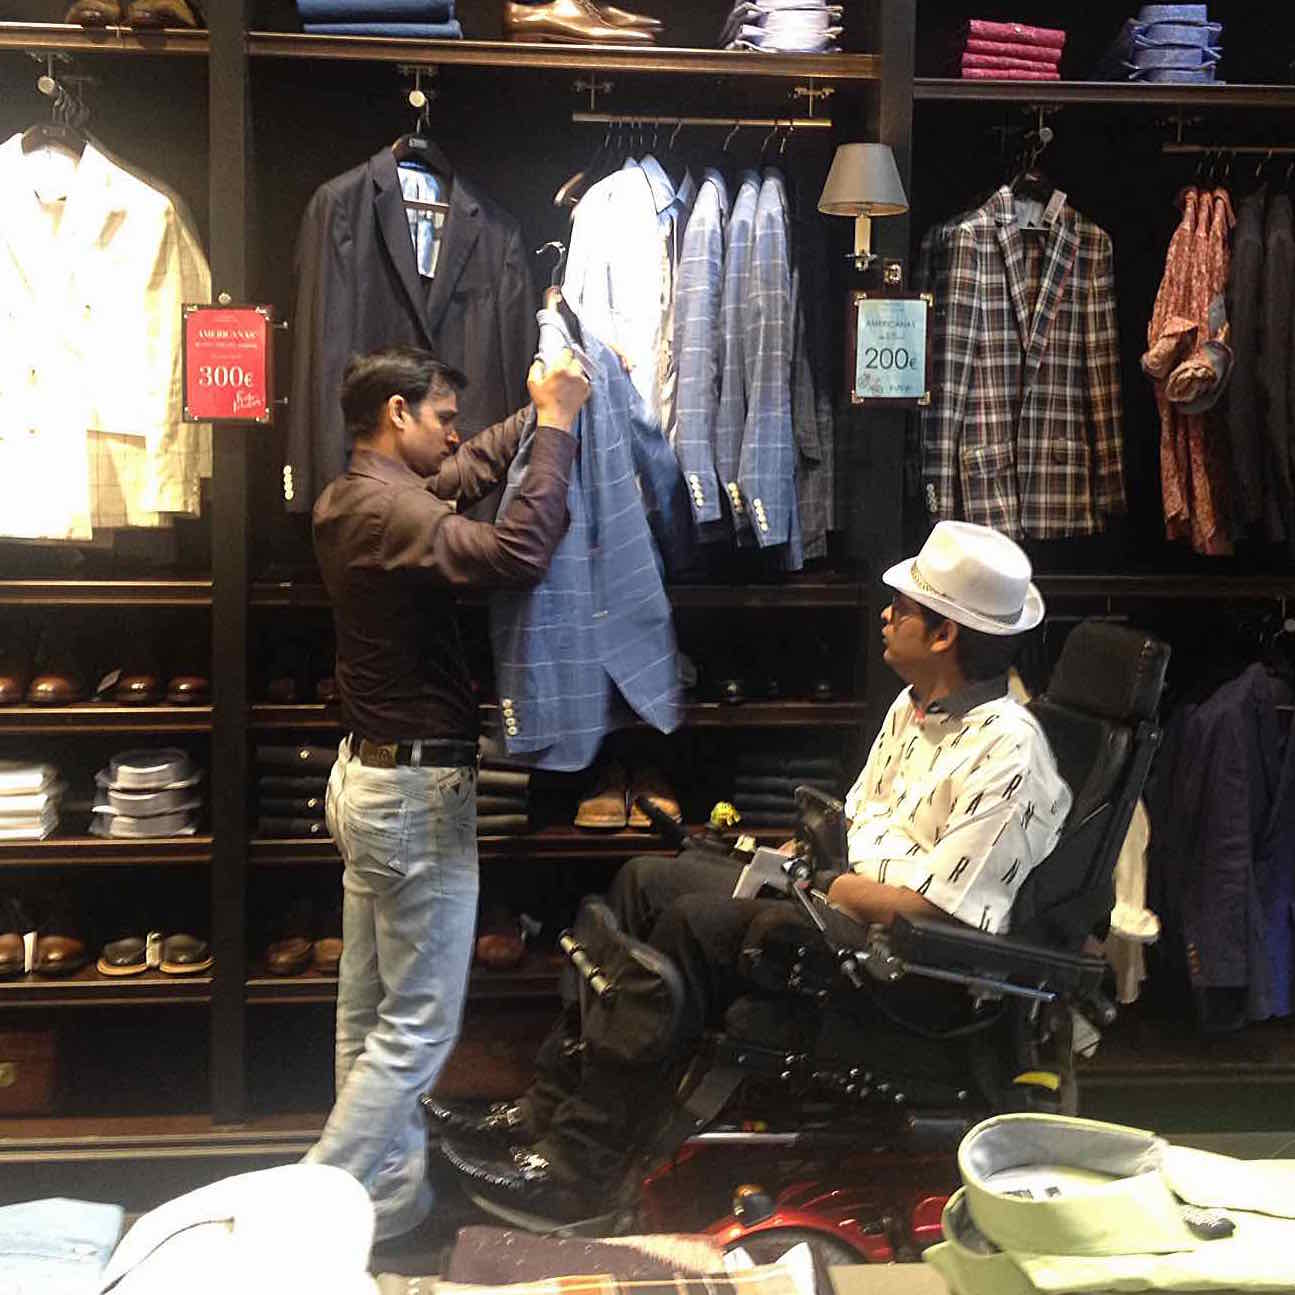 Image of shopping assistance for wheelchair user in Madrid